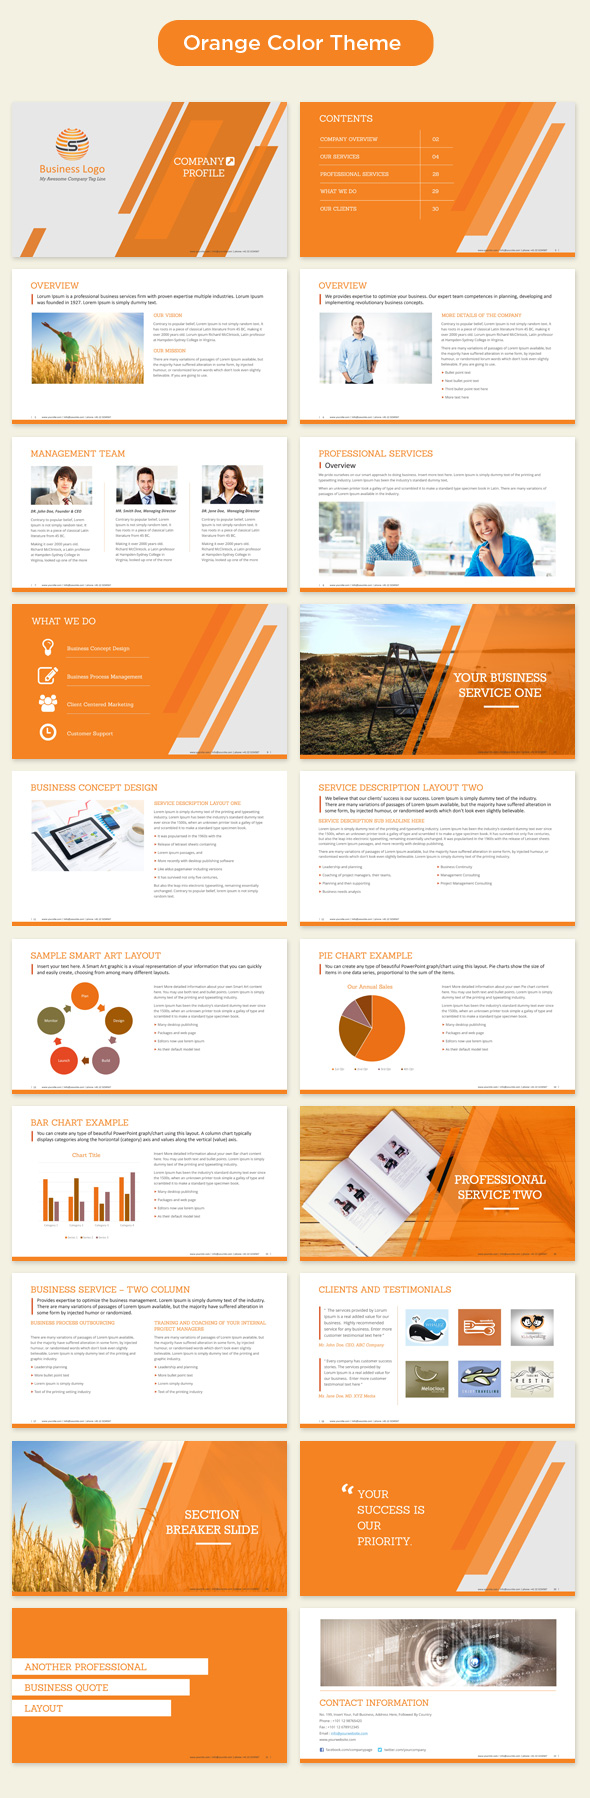 company profile powerpoint template - 350+ master slide templates, Modern powerpoint